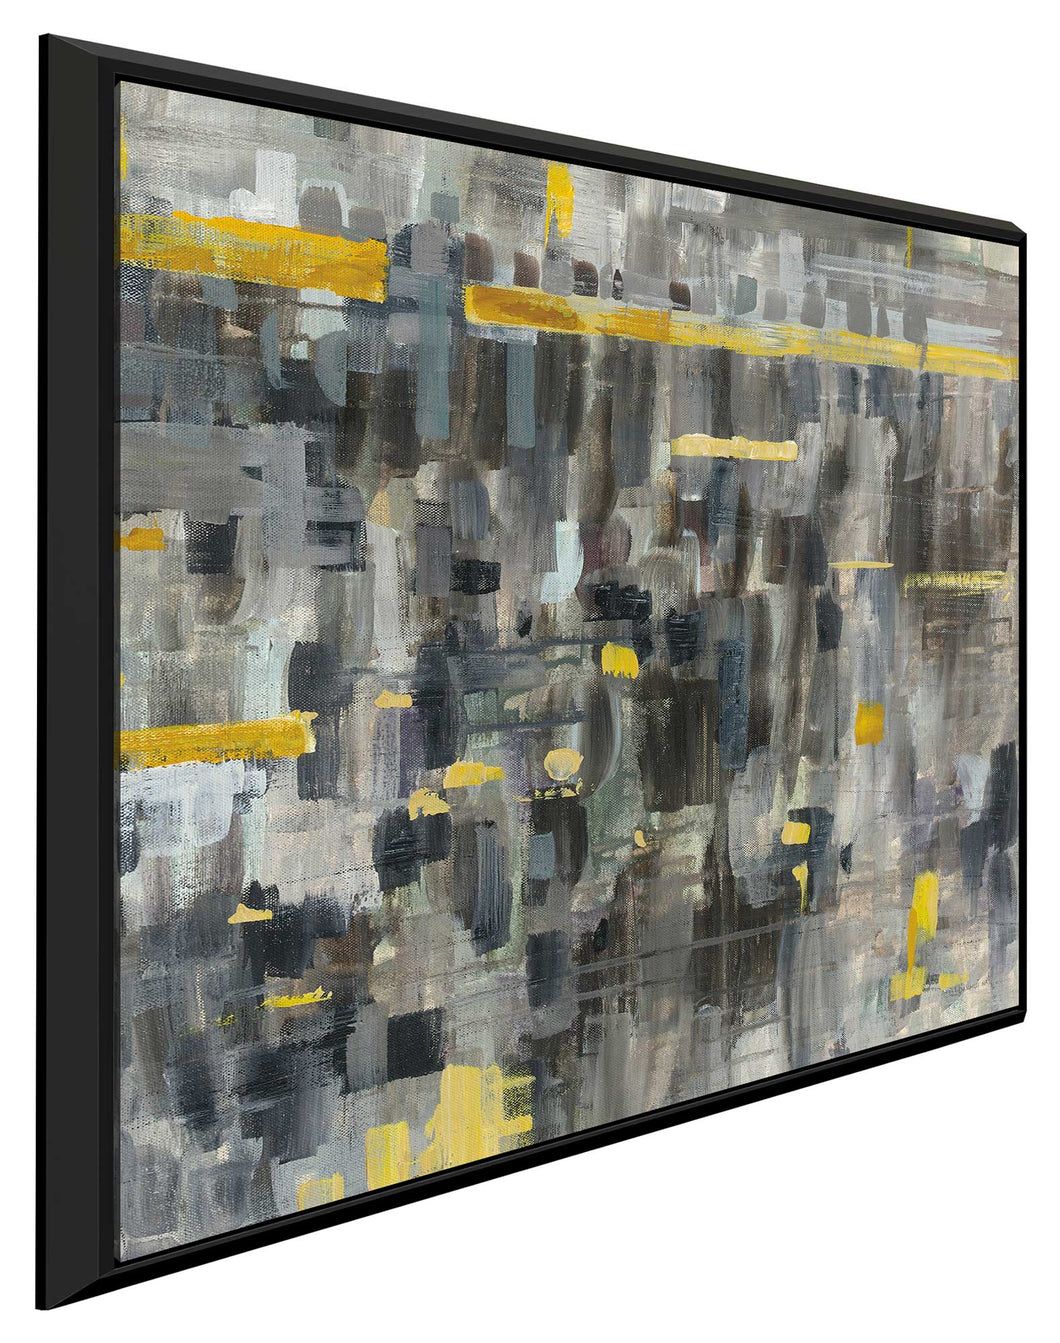 Reflections Crop II Print on Canvas in Floating Frame Abstract,Gray art,Square Shape,All Floating Canvas,Danhui Nai